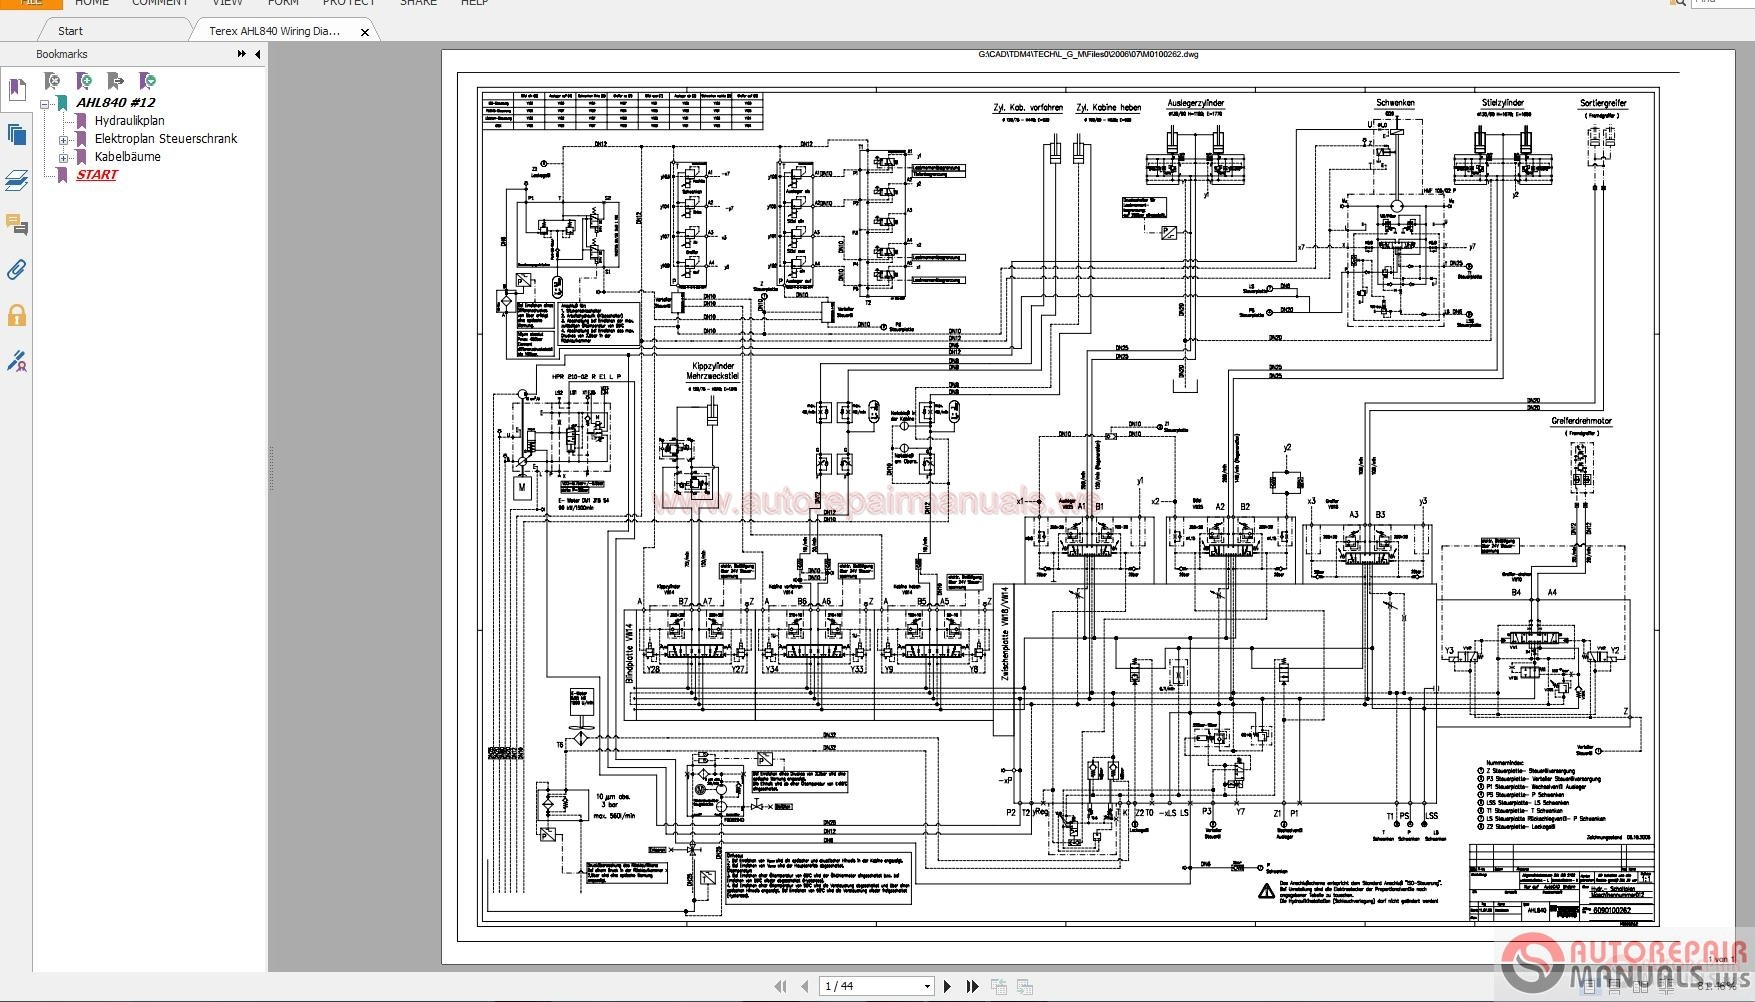 hight resolution of imt crane wiring diagram imt hydraulic air compressor demag overhead crane electrical diagram demag crane pendant